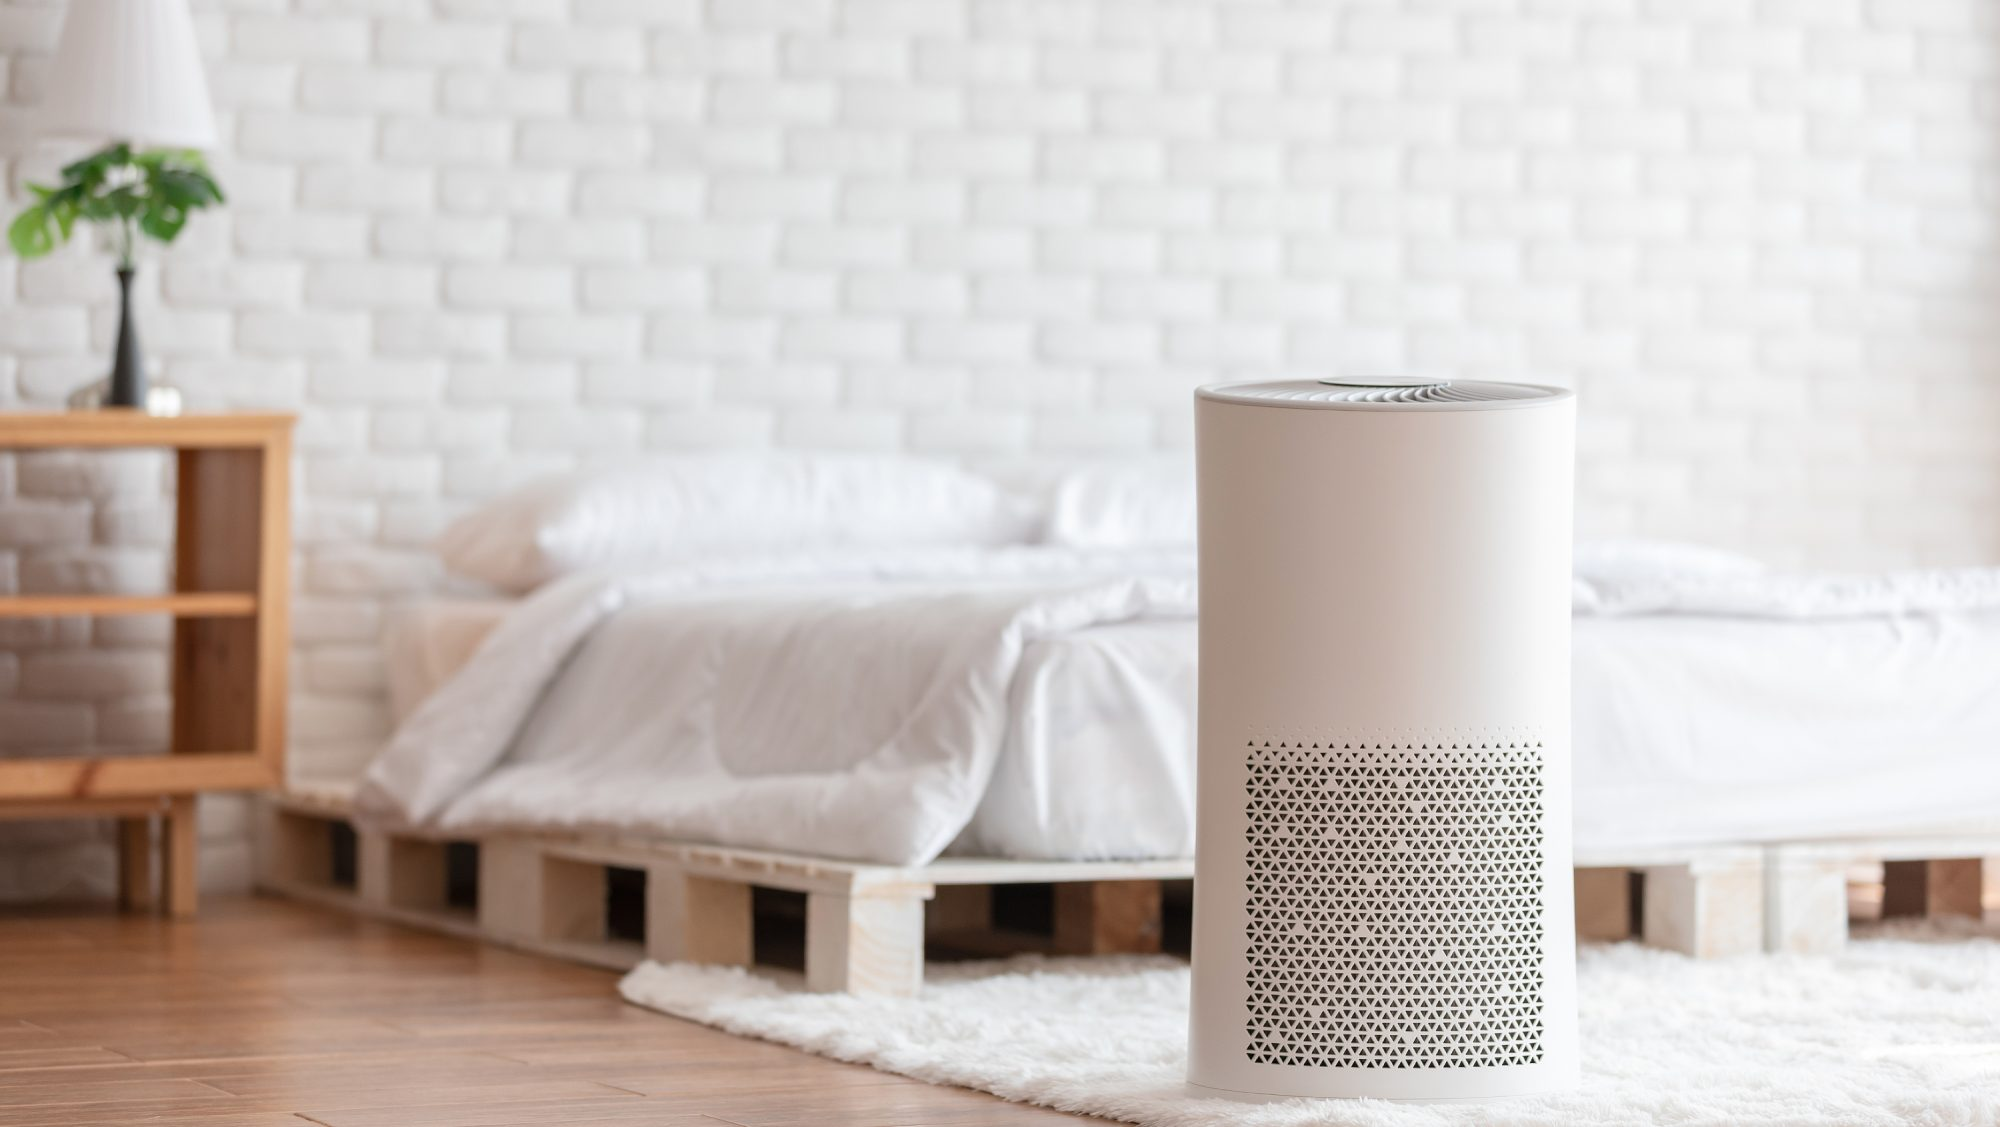 air purifier in bedroom: do air purifiers work on COVID-19?